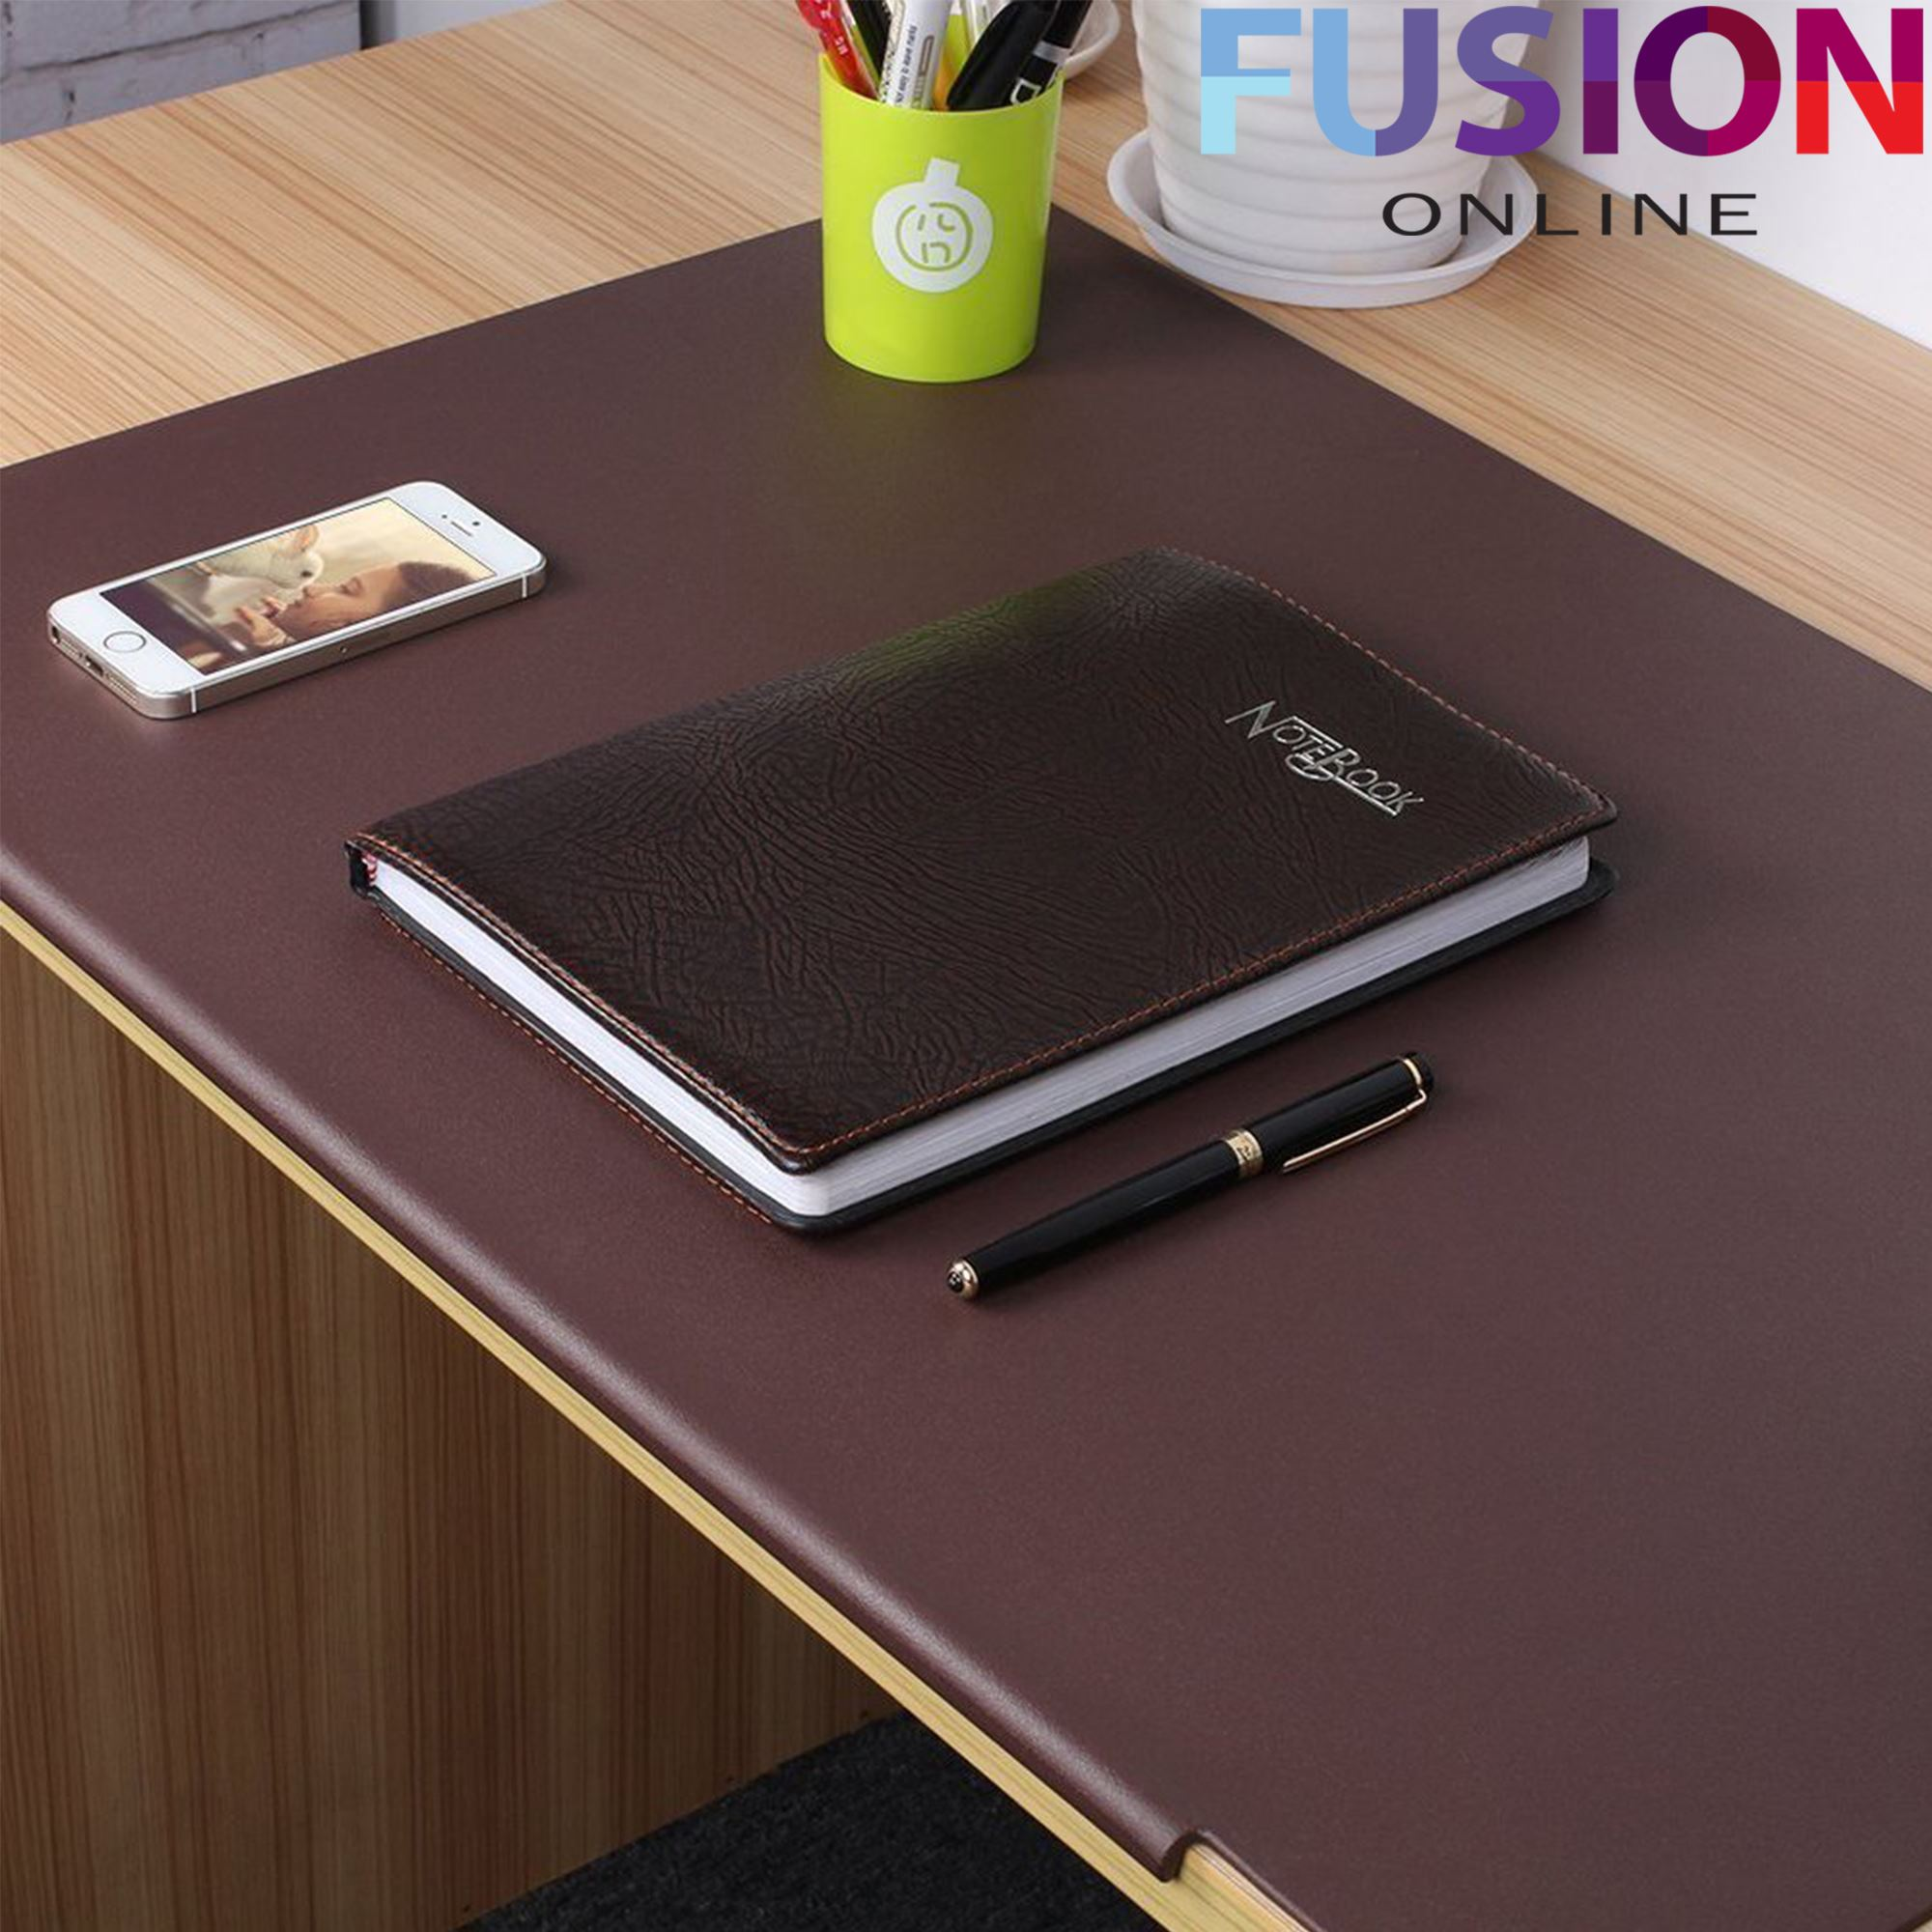 Mouse Pad Mat Gaming Desk Leather Writing Mat Pvc Home